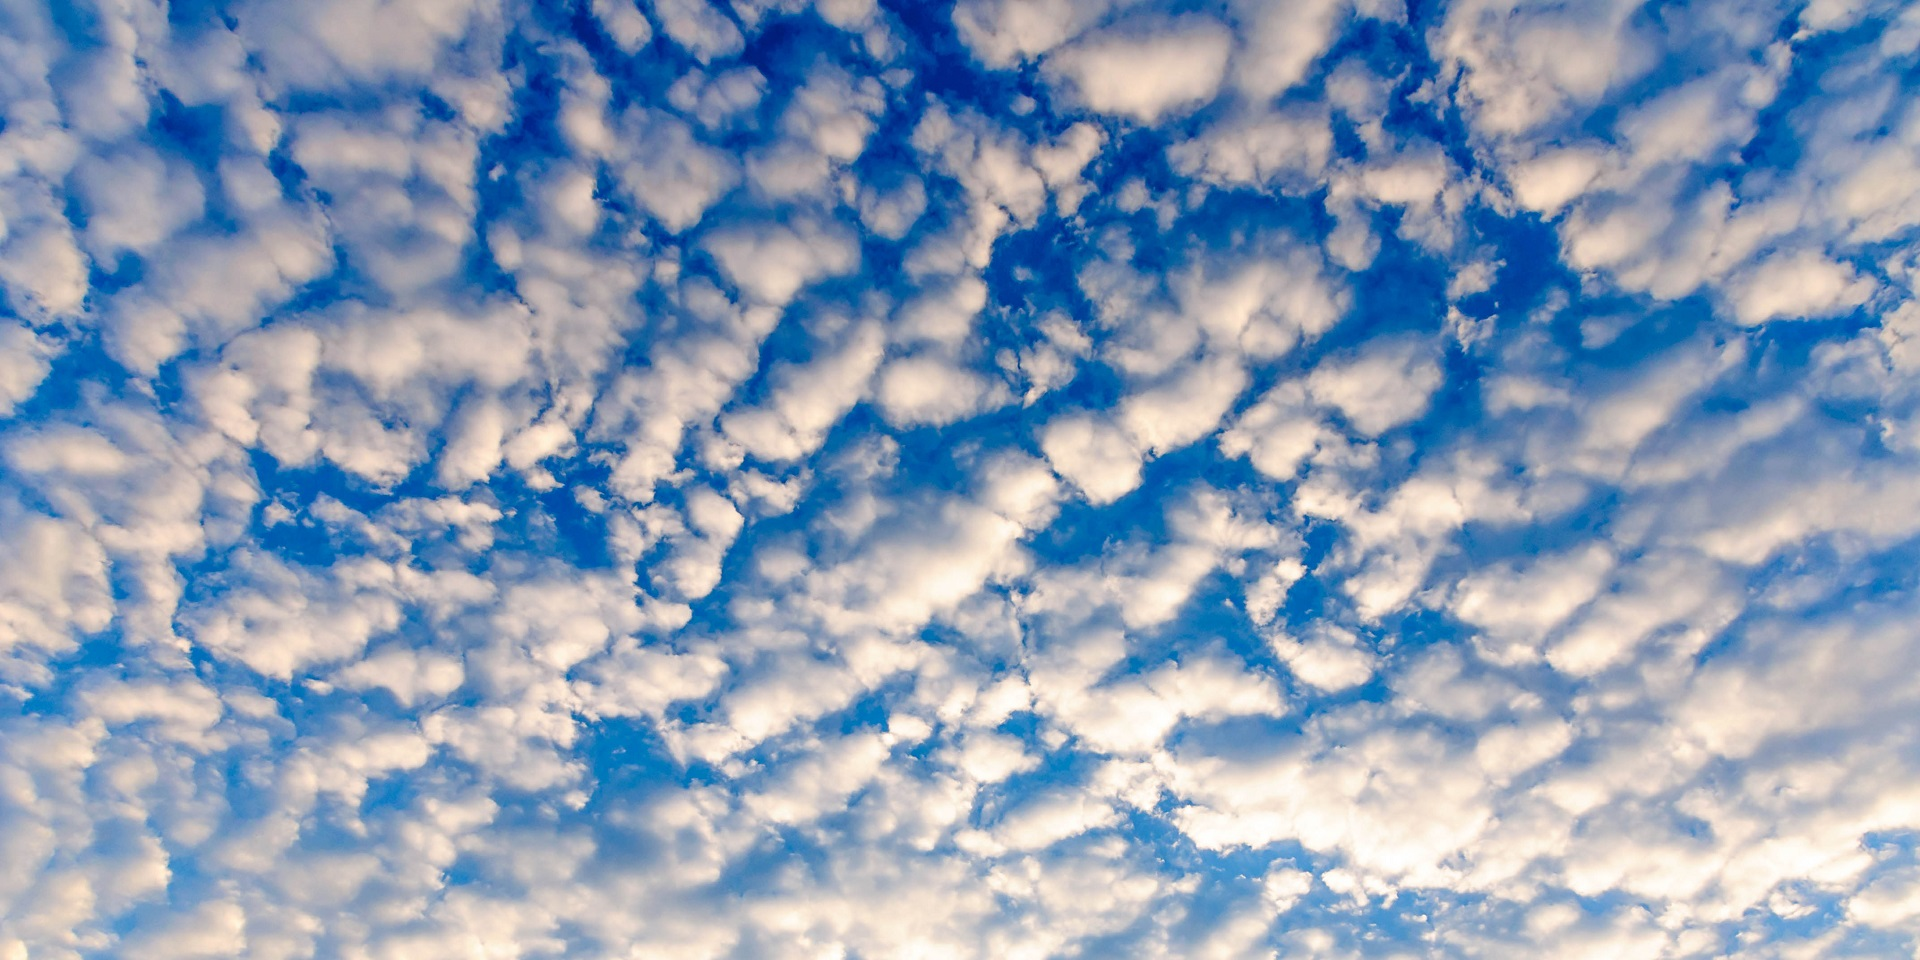 7 facts about clouds - Met Office